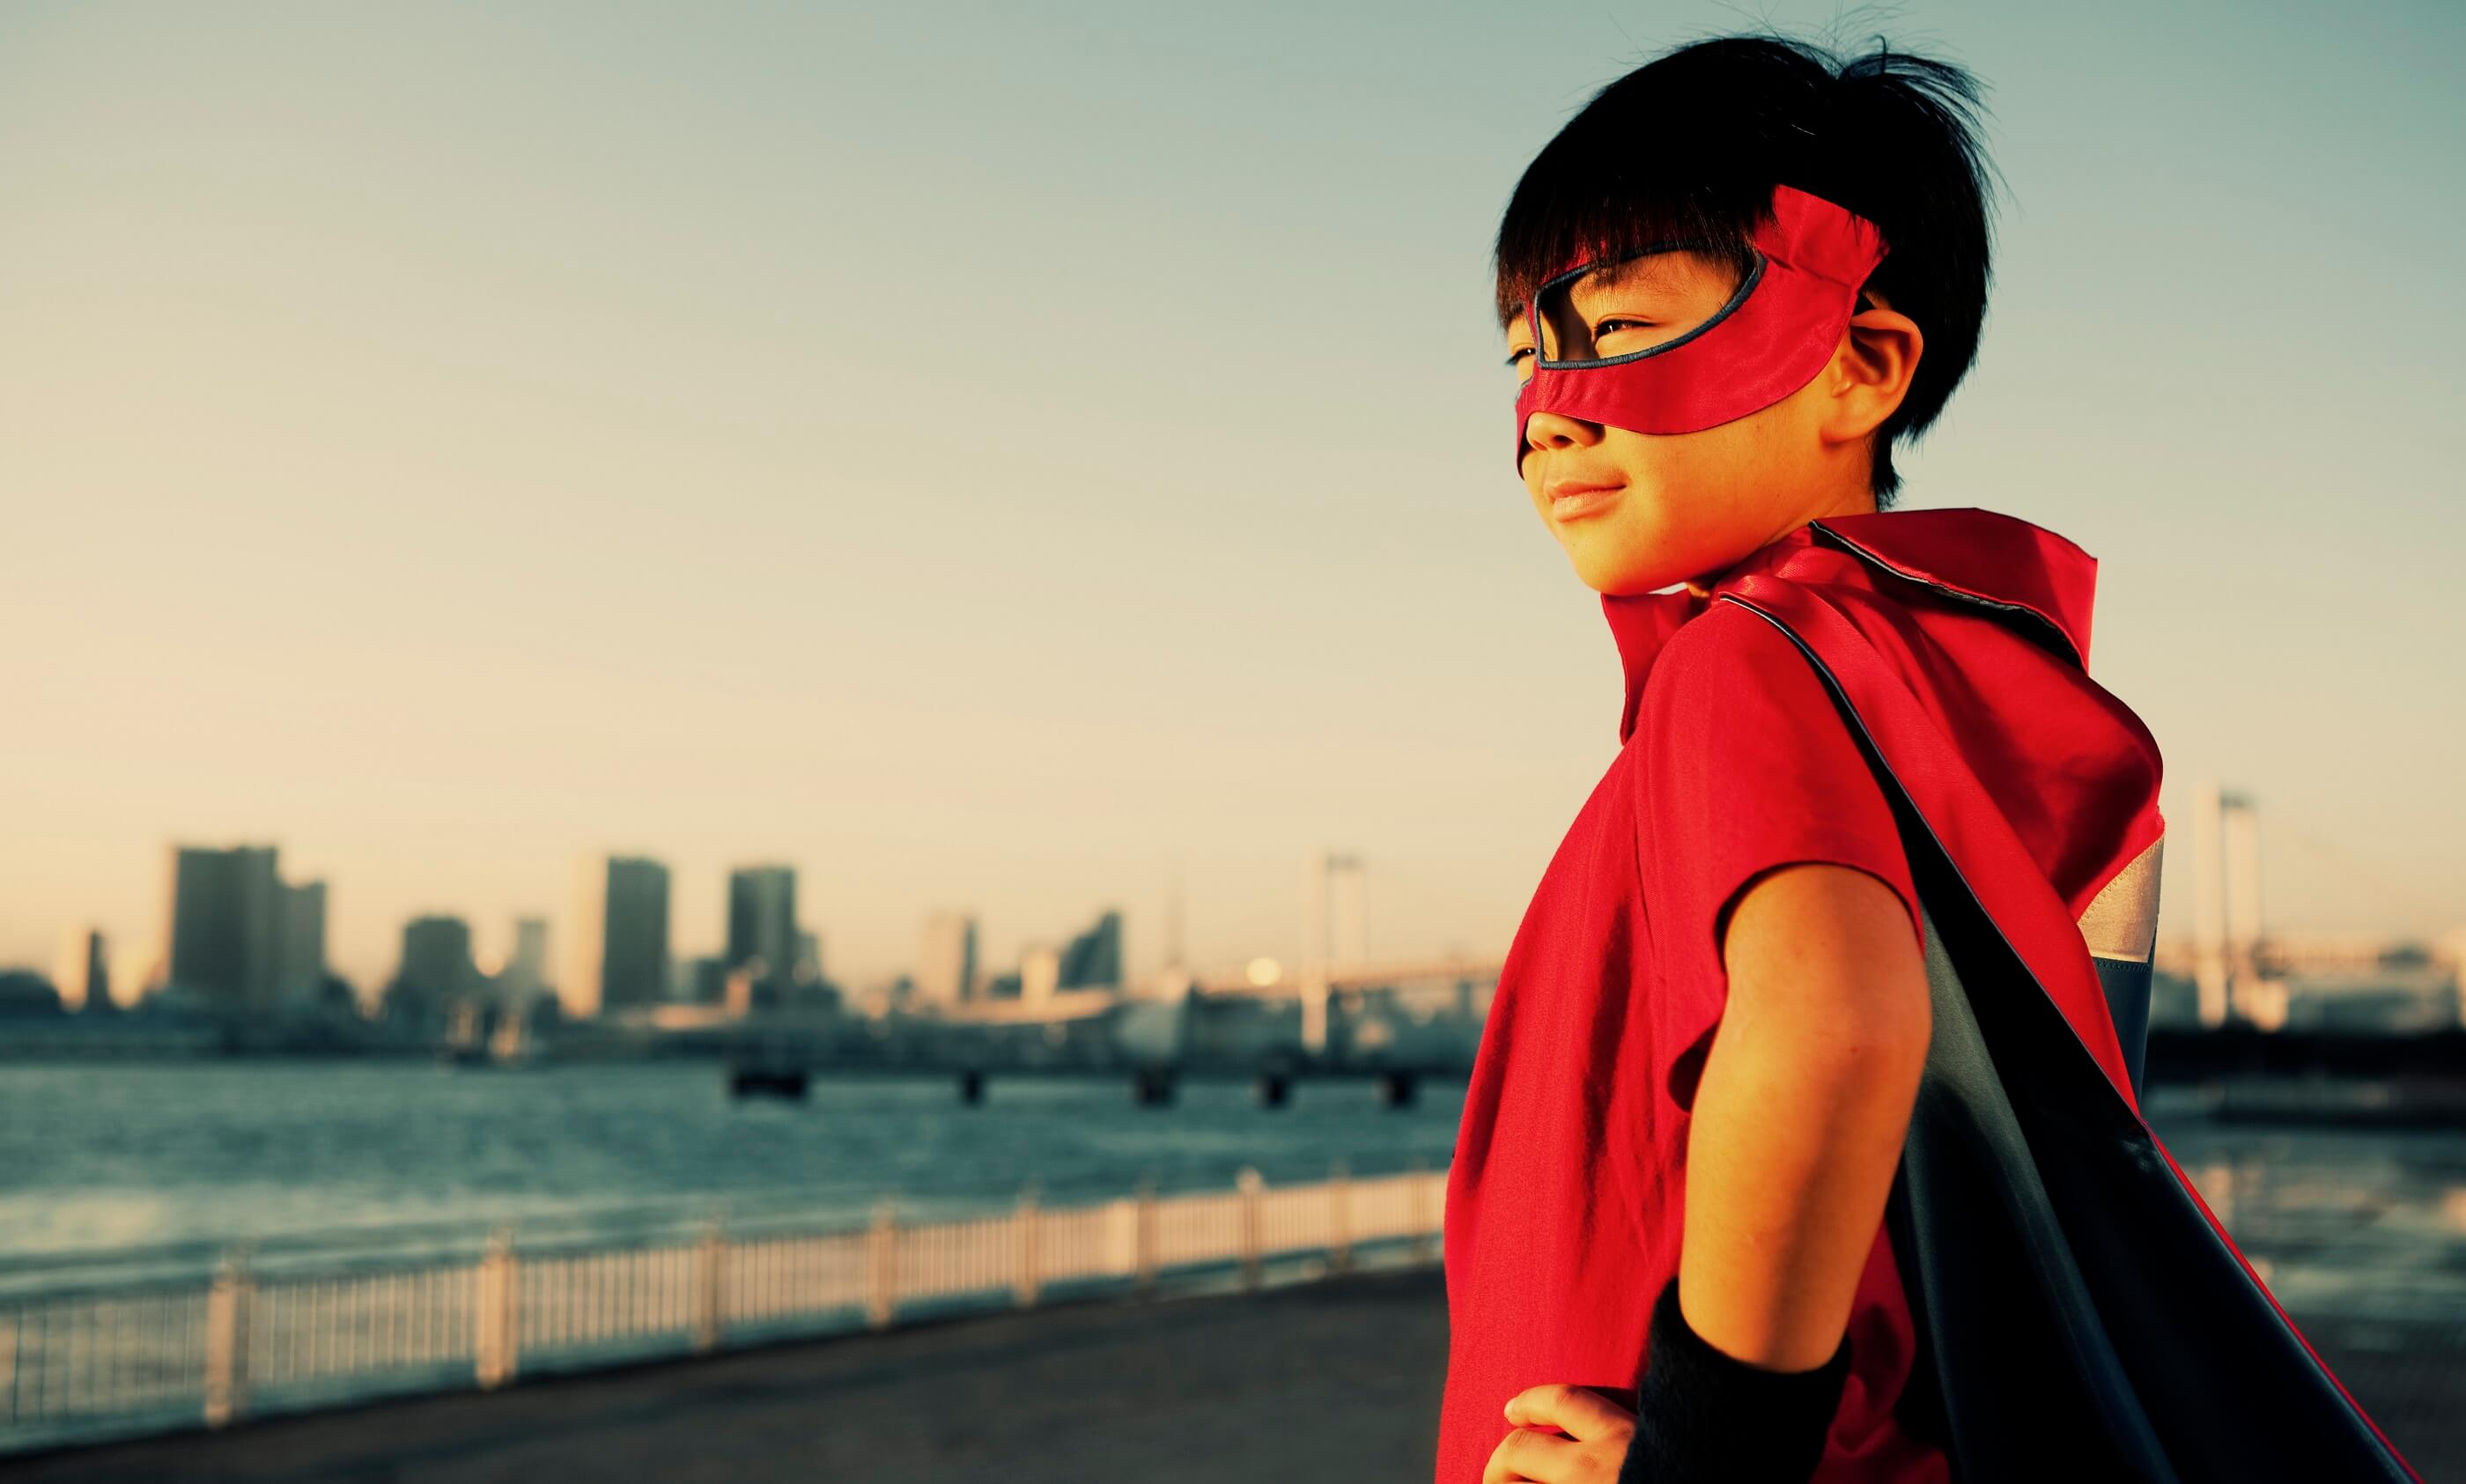 Portrait of a young Japanese boy superhero.